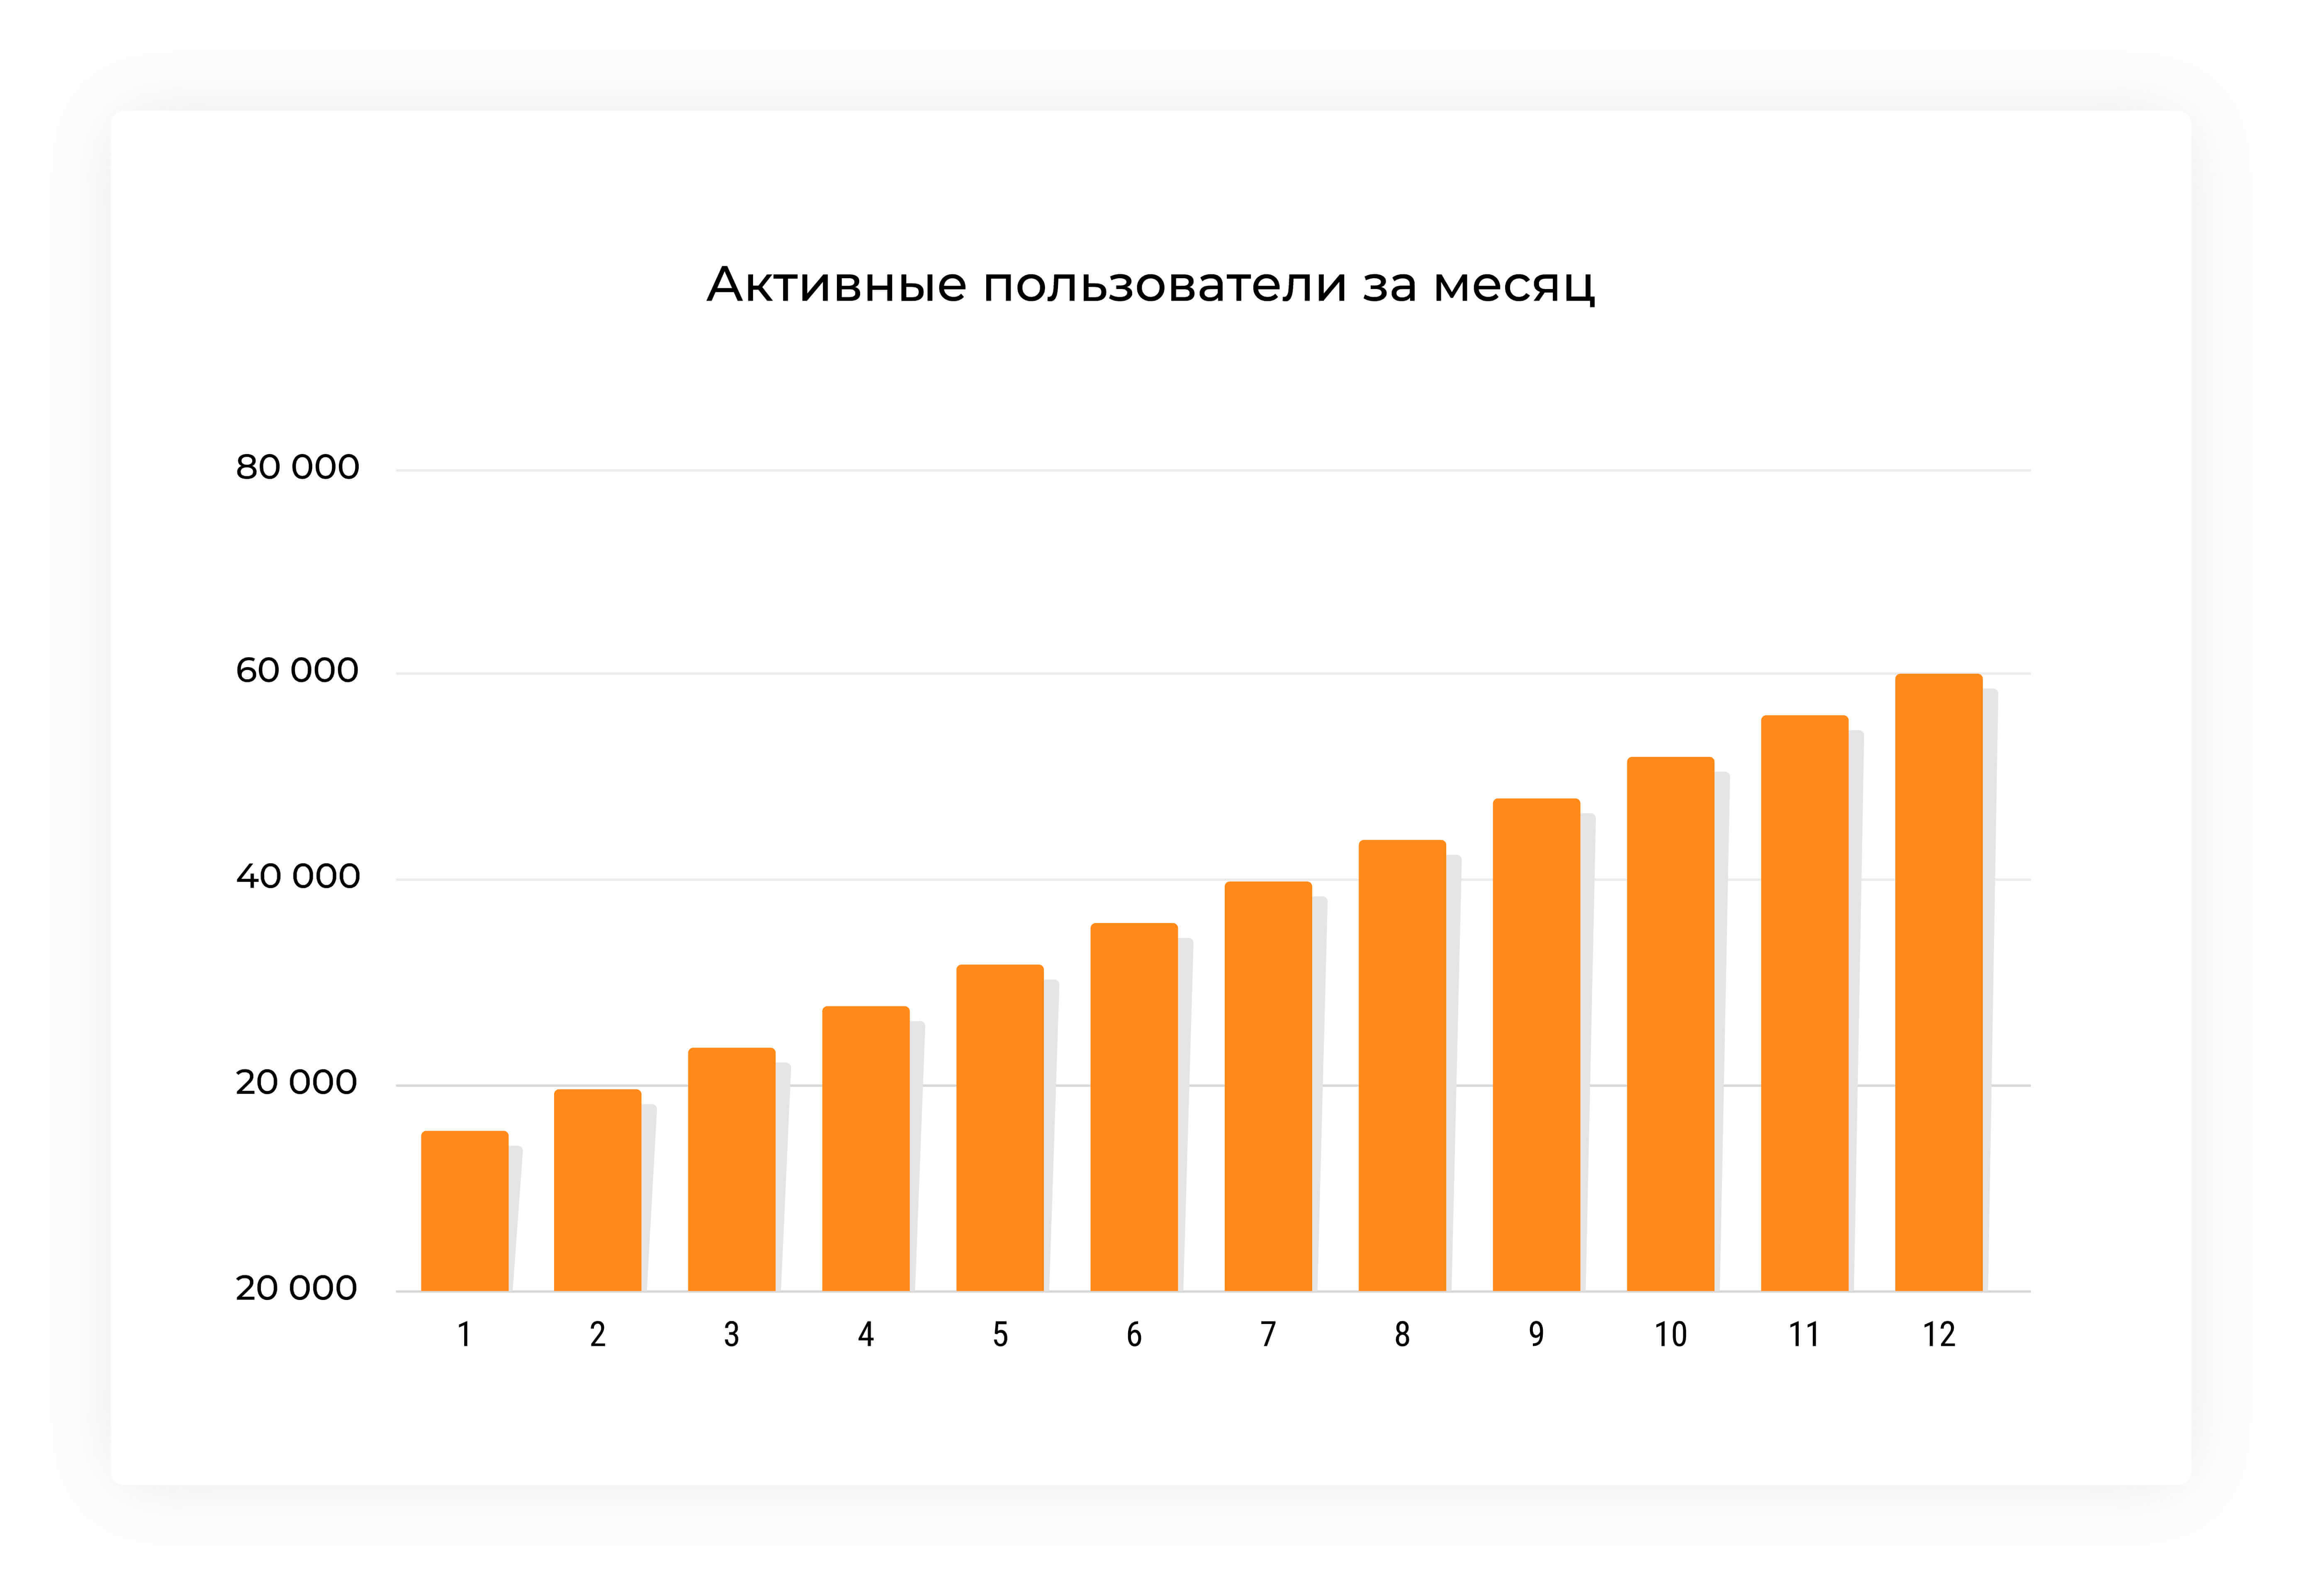 Active users per month